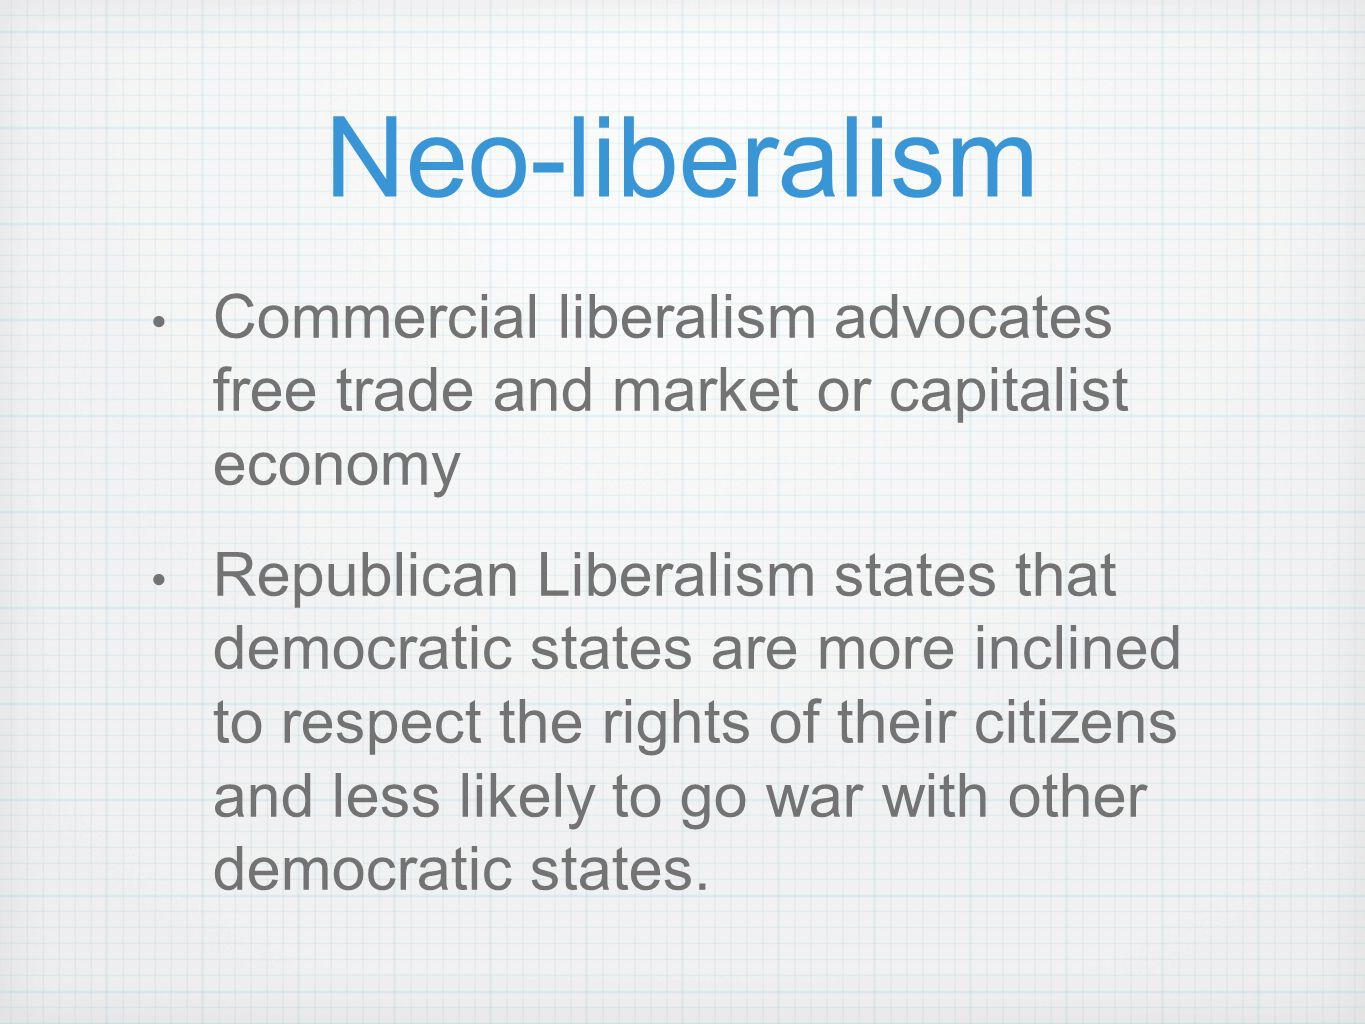 Neo-liberalism Commercial liberalism advocates free trade and market or capitalist economy.